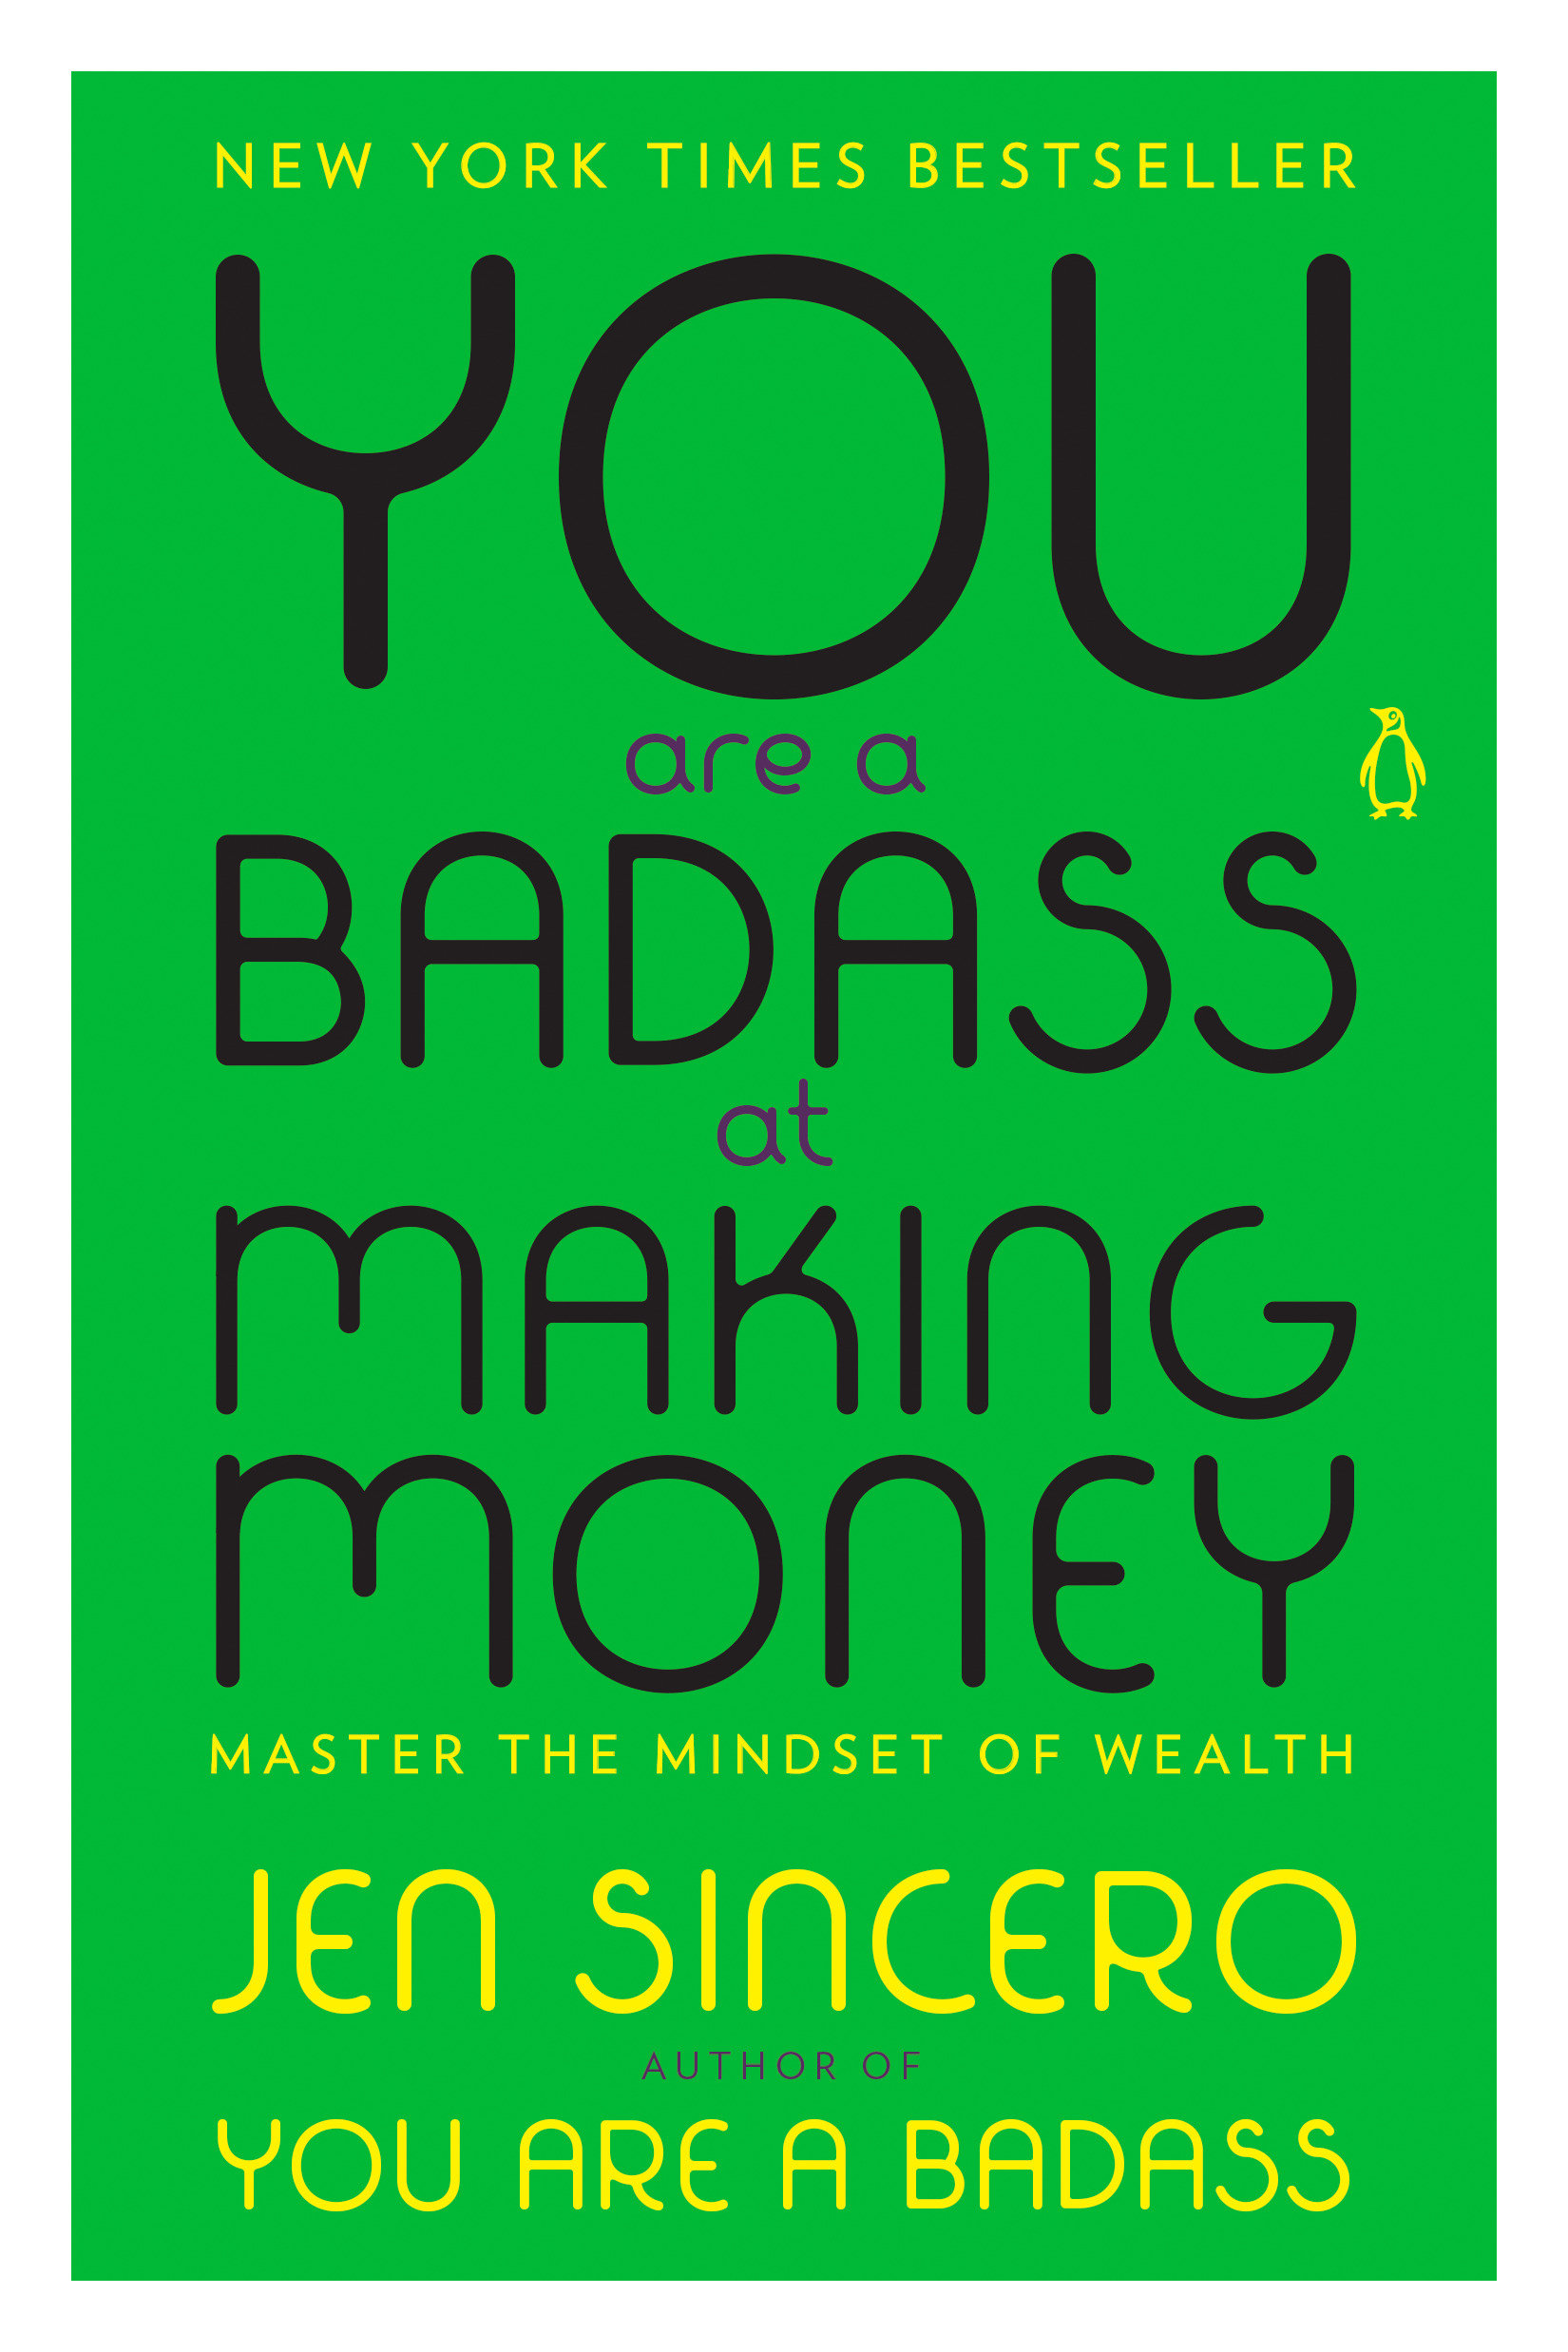 You are a badass at making money master the mindset of wealth cover image